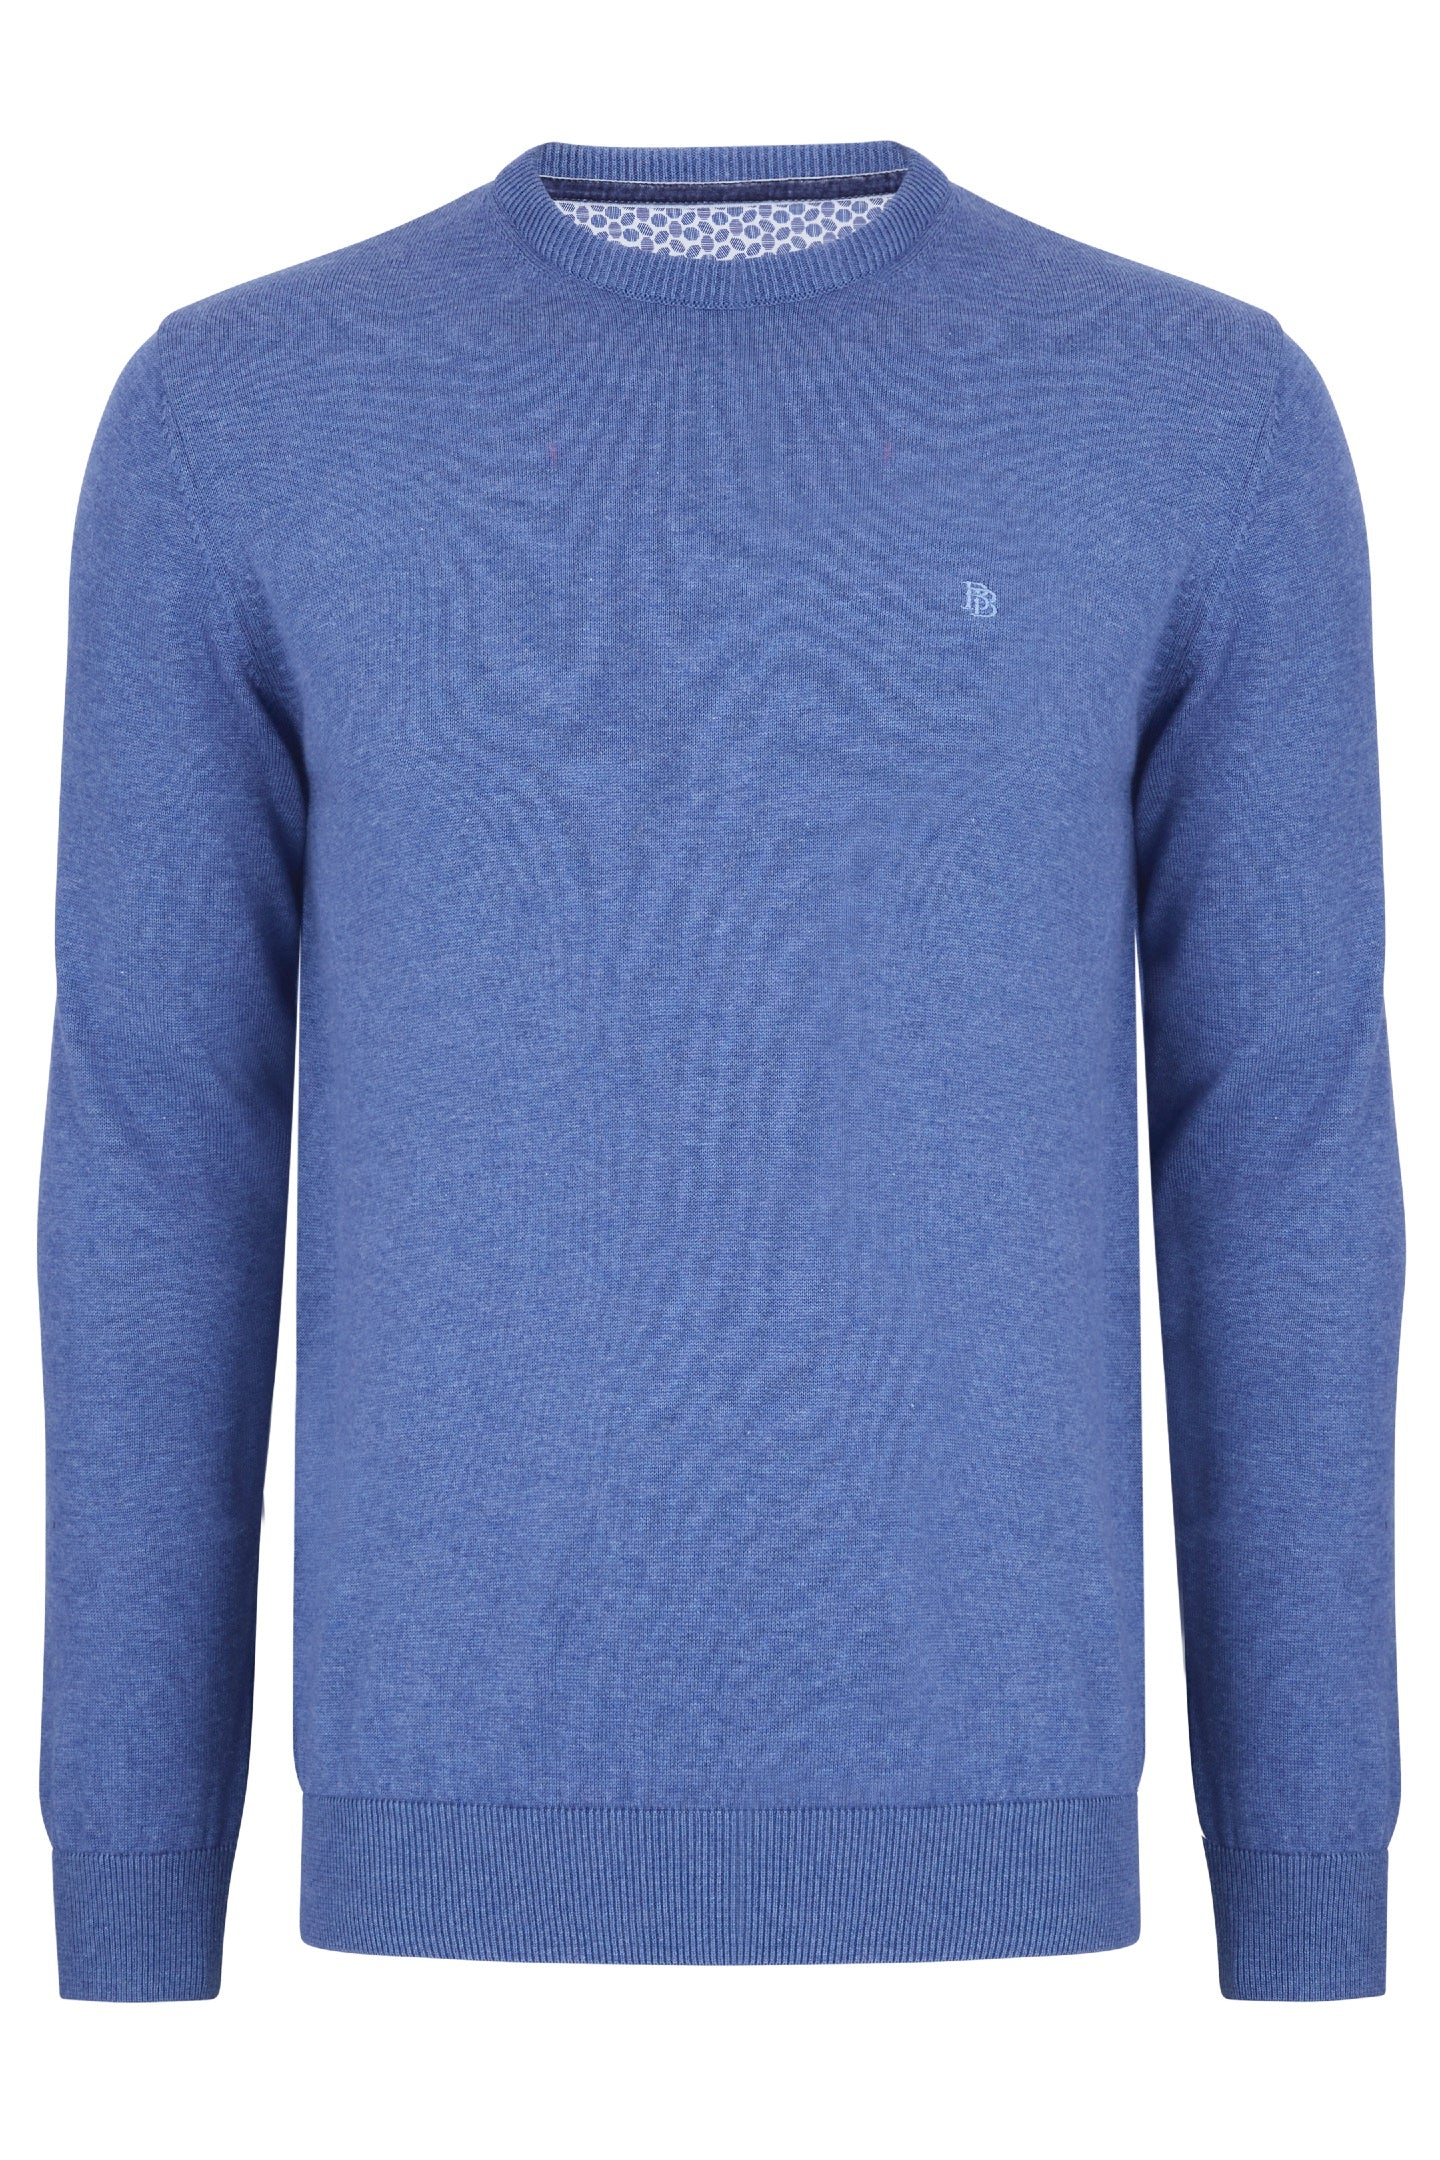 Benetti Smoke Crew Neck Sweater